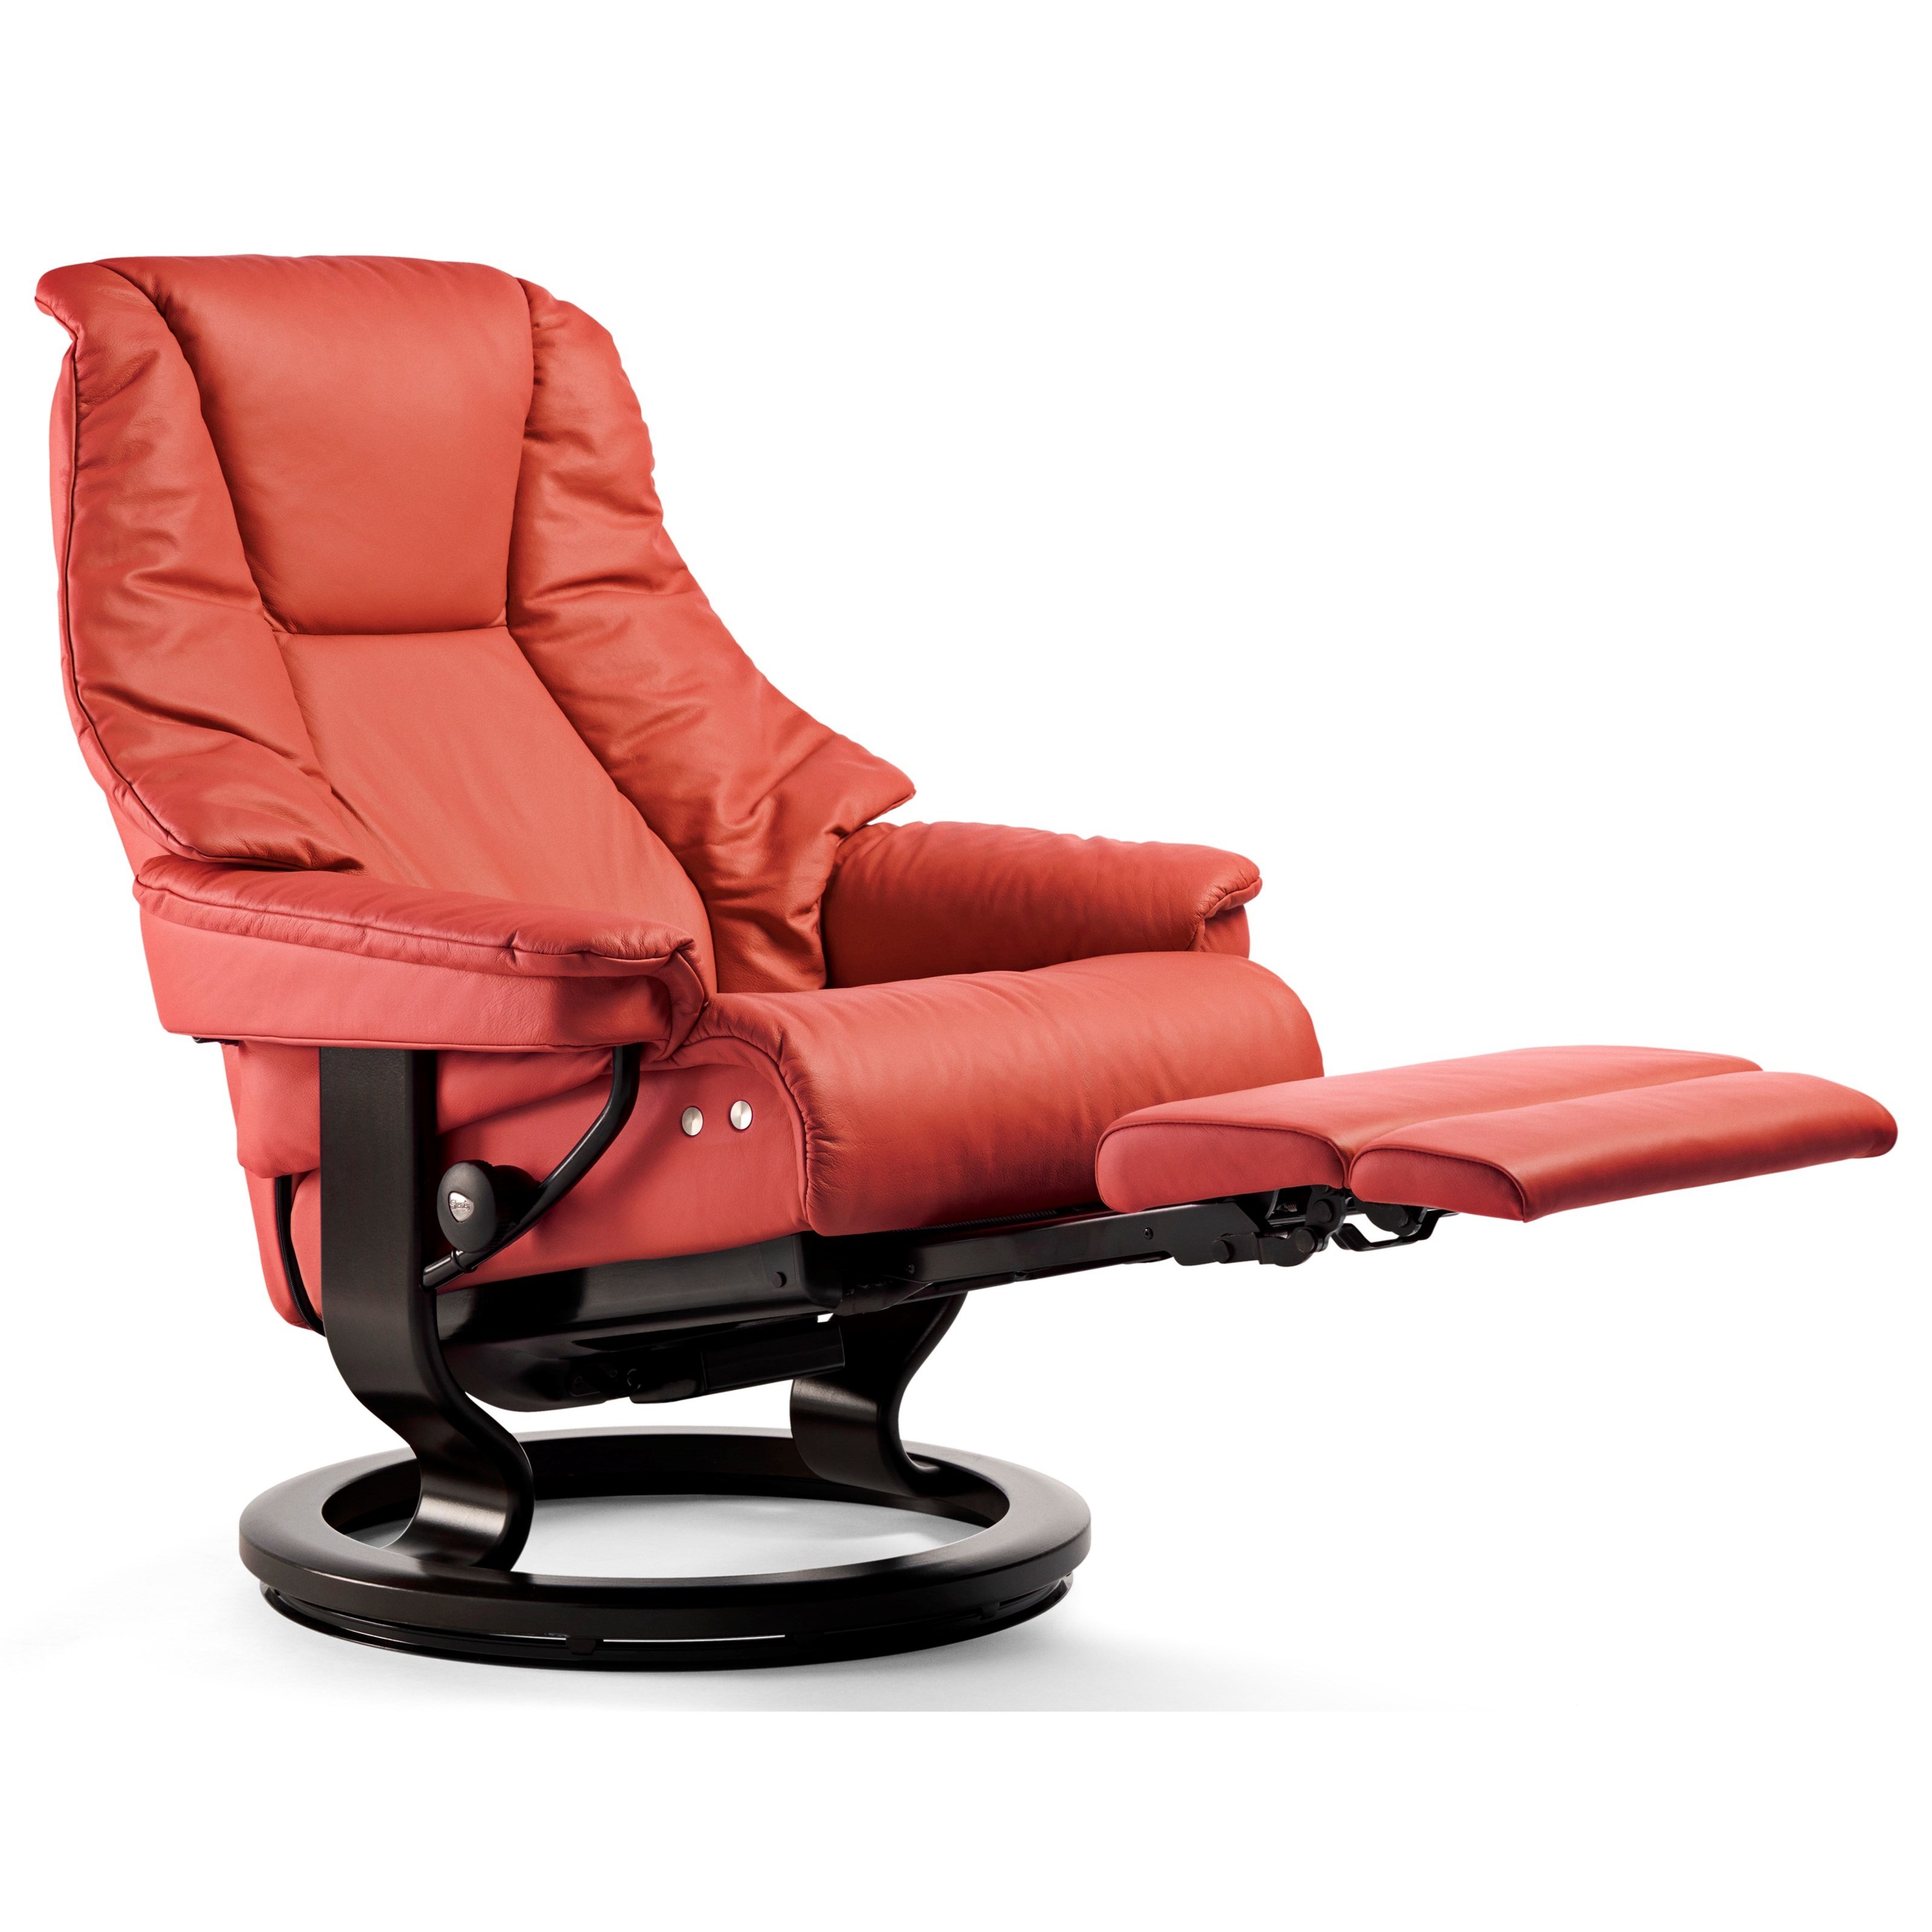 Stressless Wing Classic Legcomfort Stressless Live 1320715 Large Legcomfort Chair With